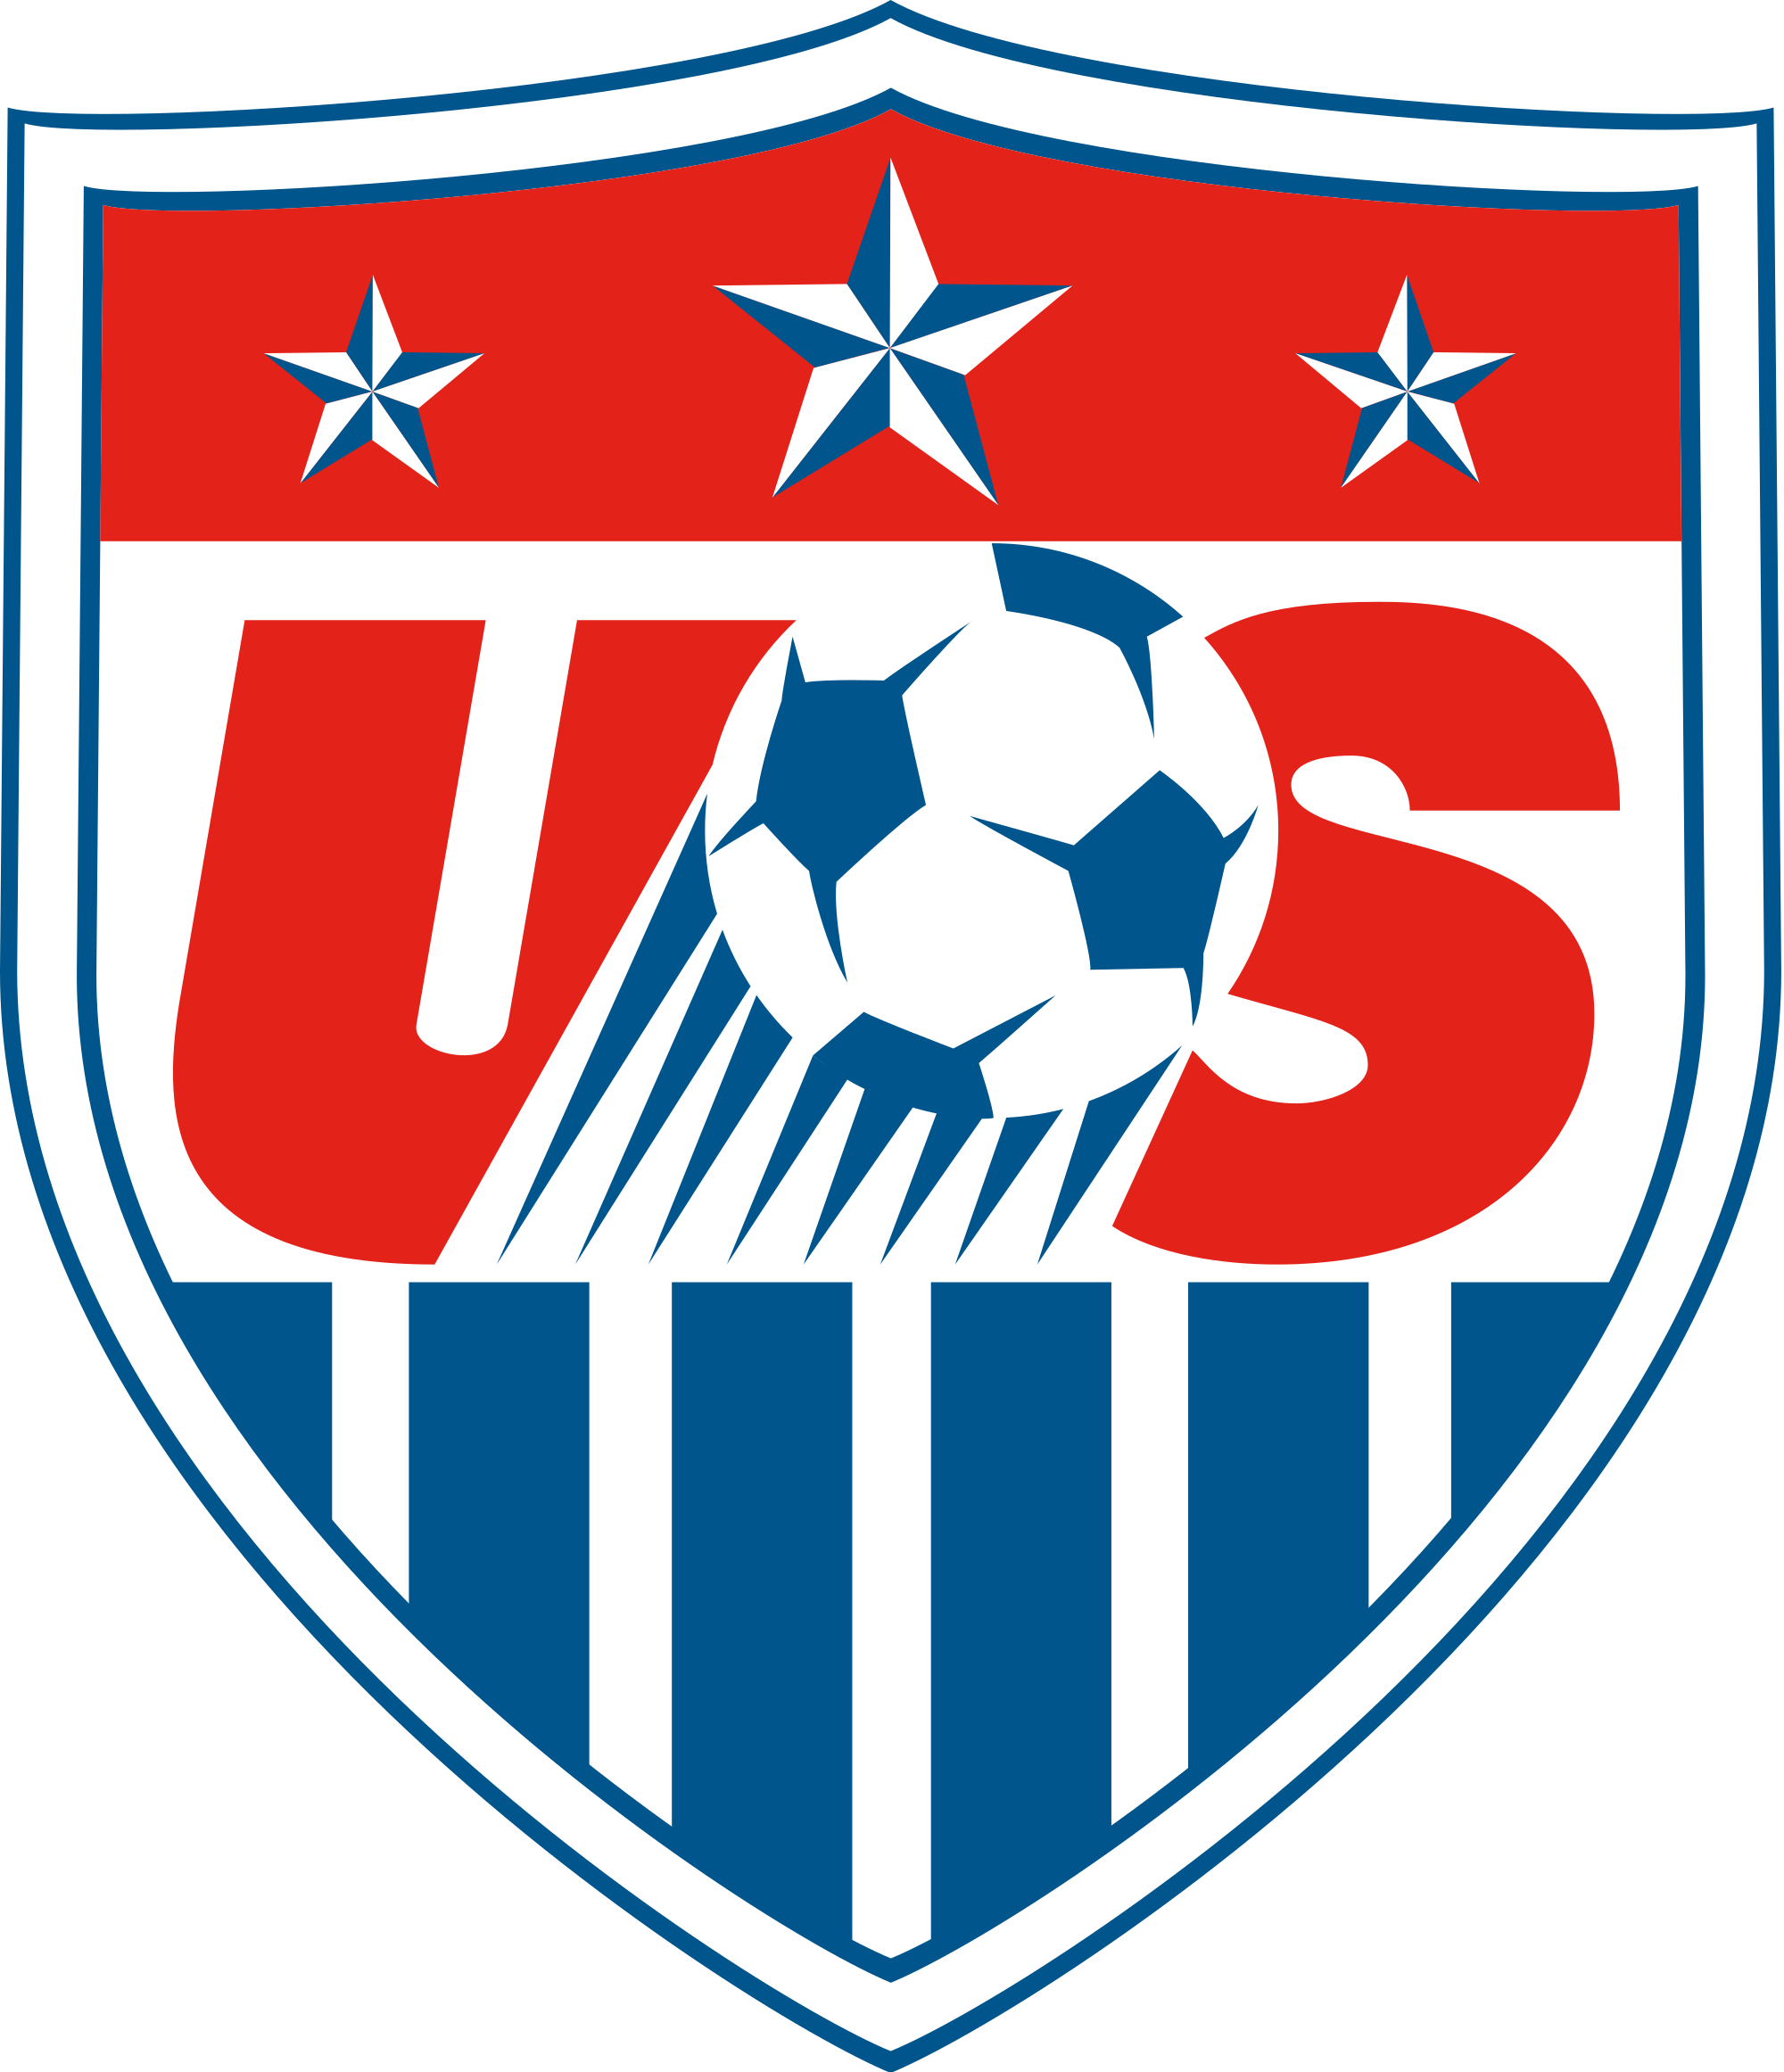 Clipart shield soccer. File united states federation